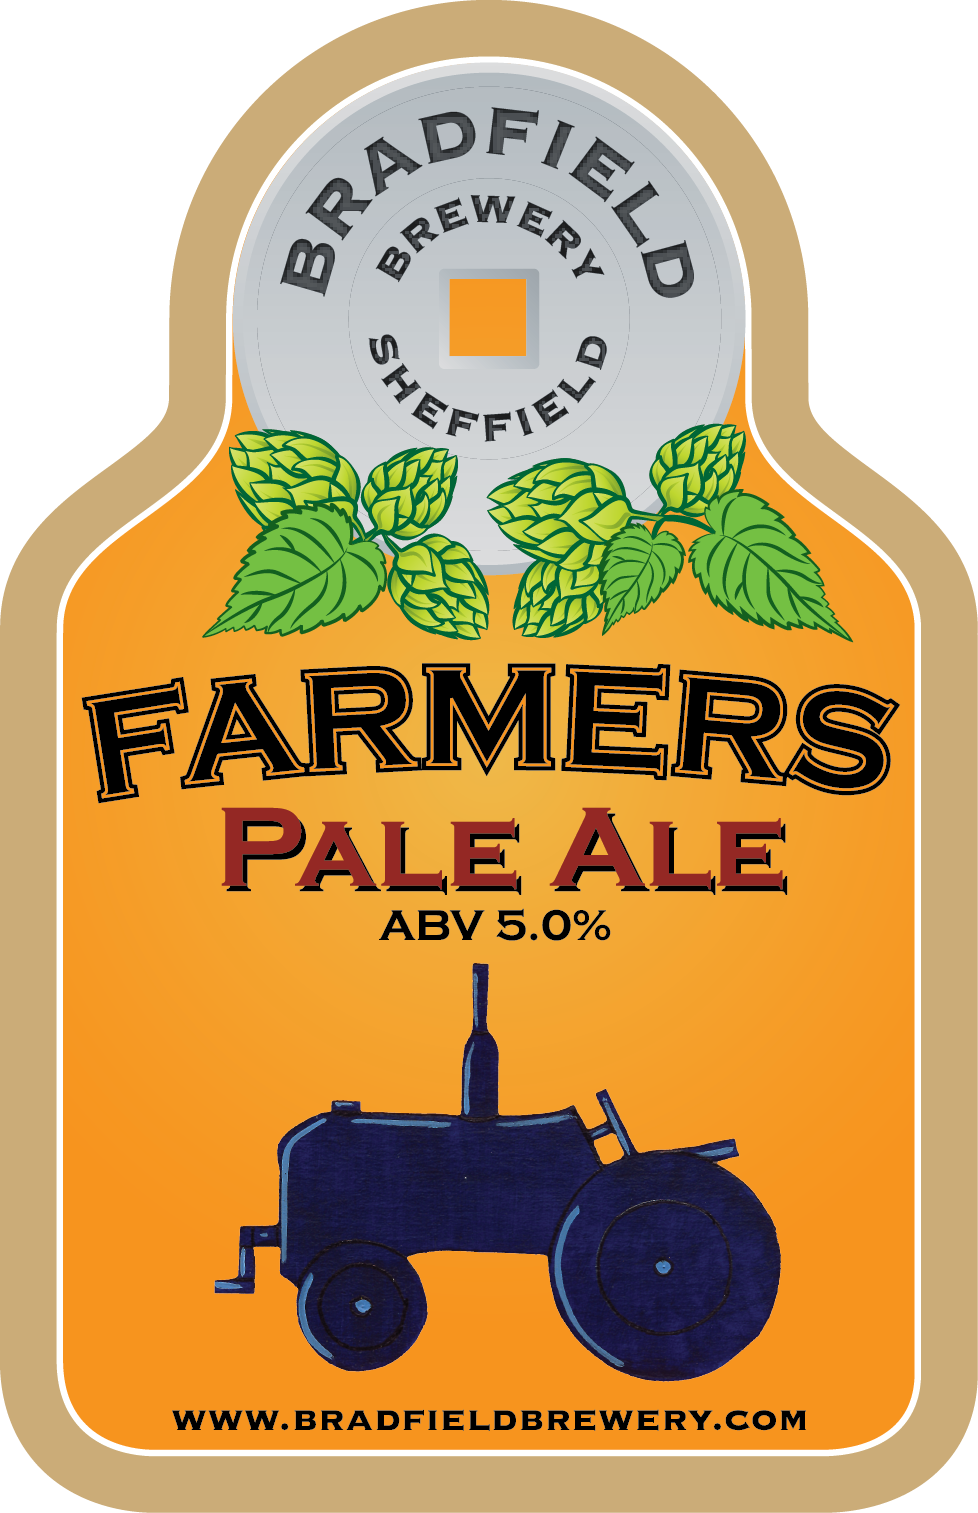 Farmers Pale Ale